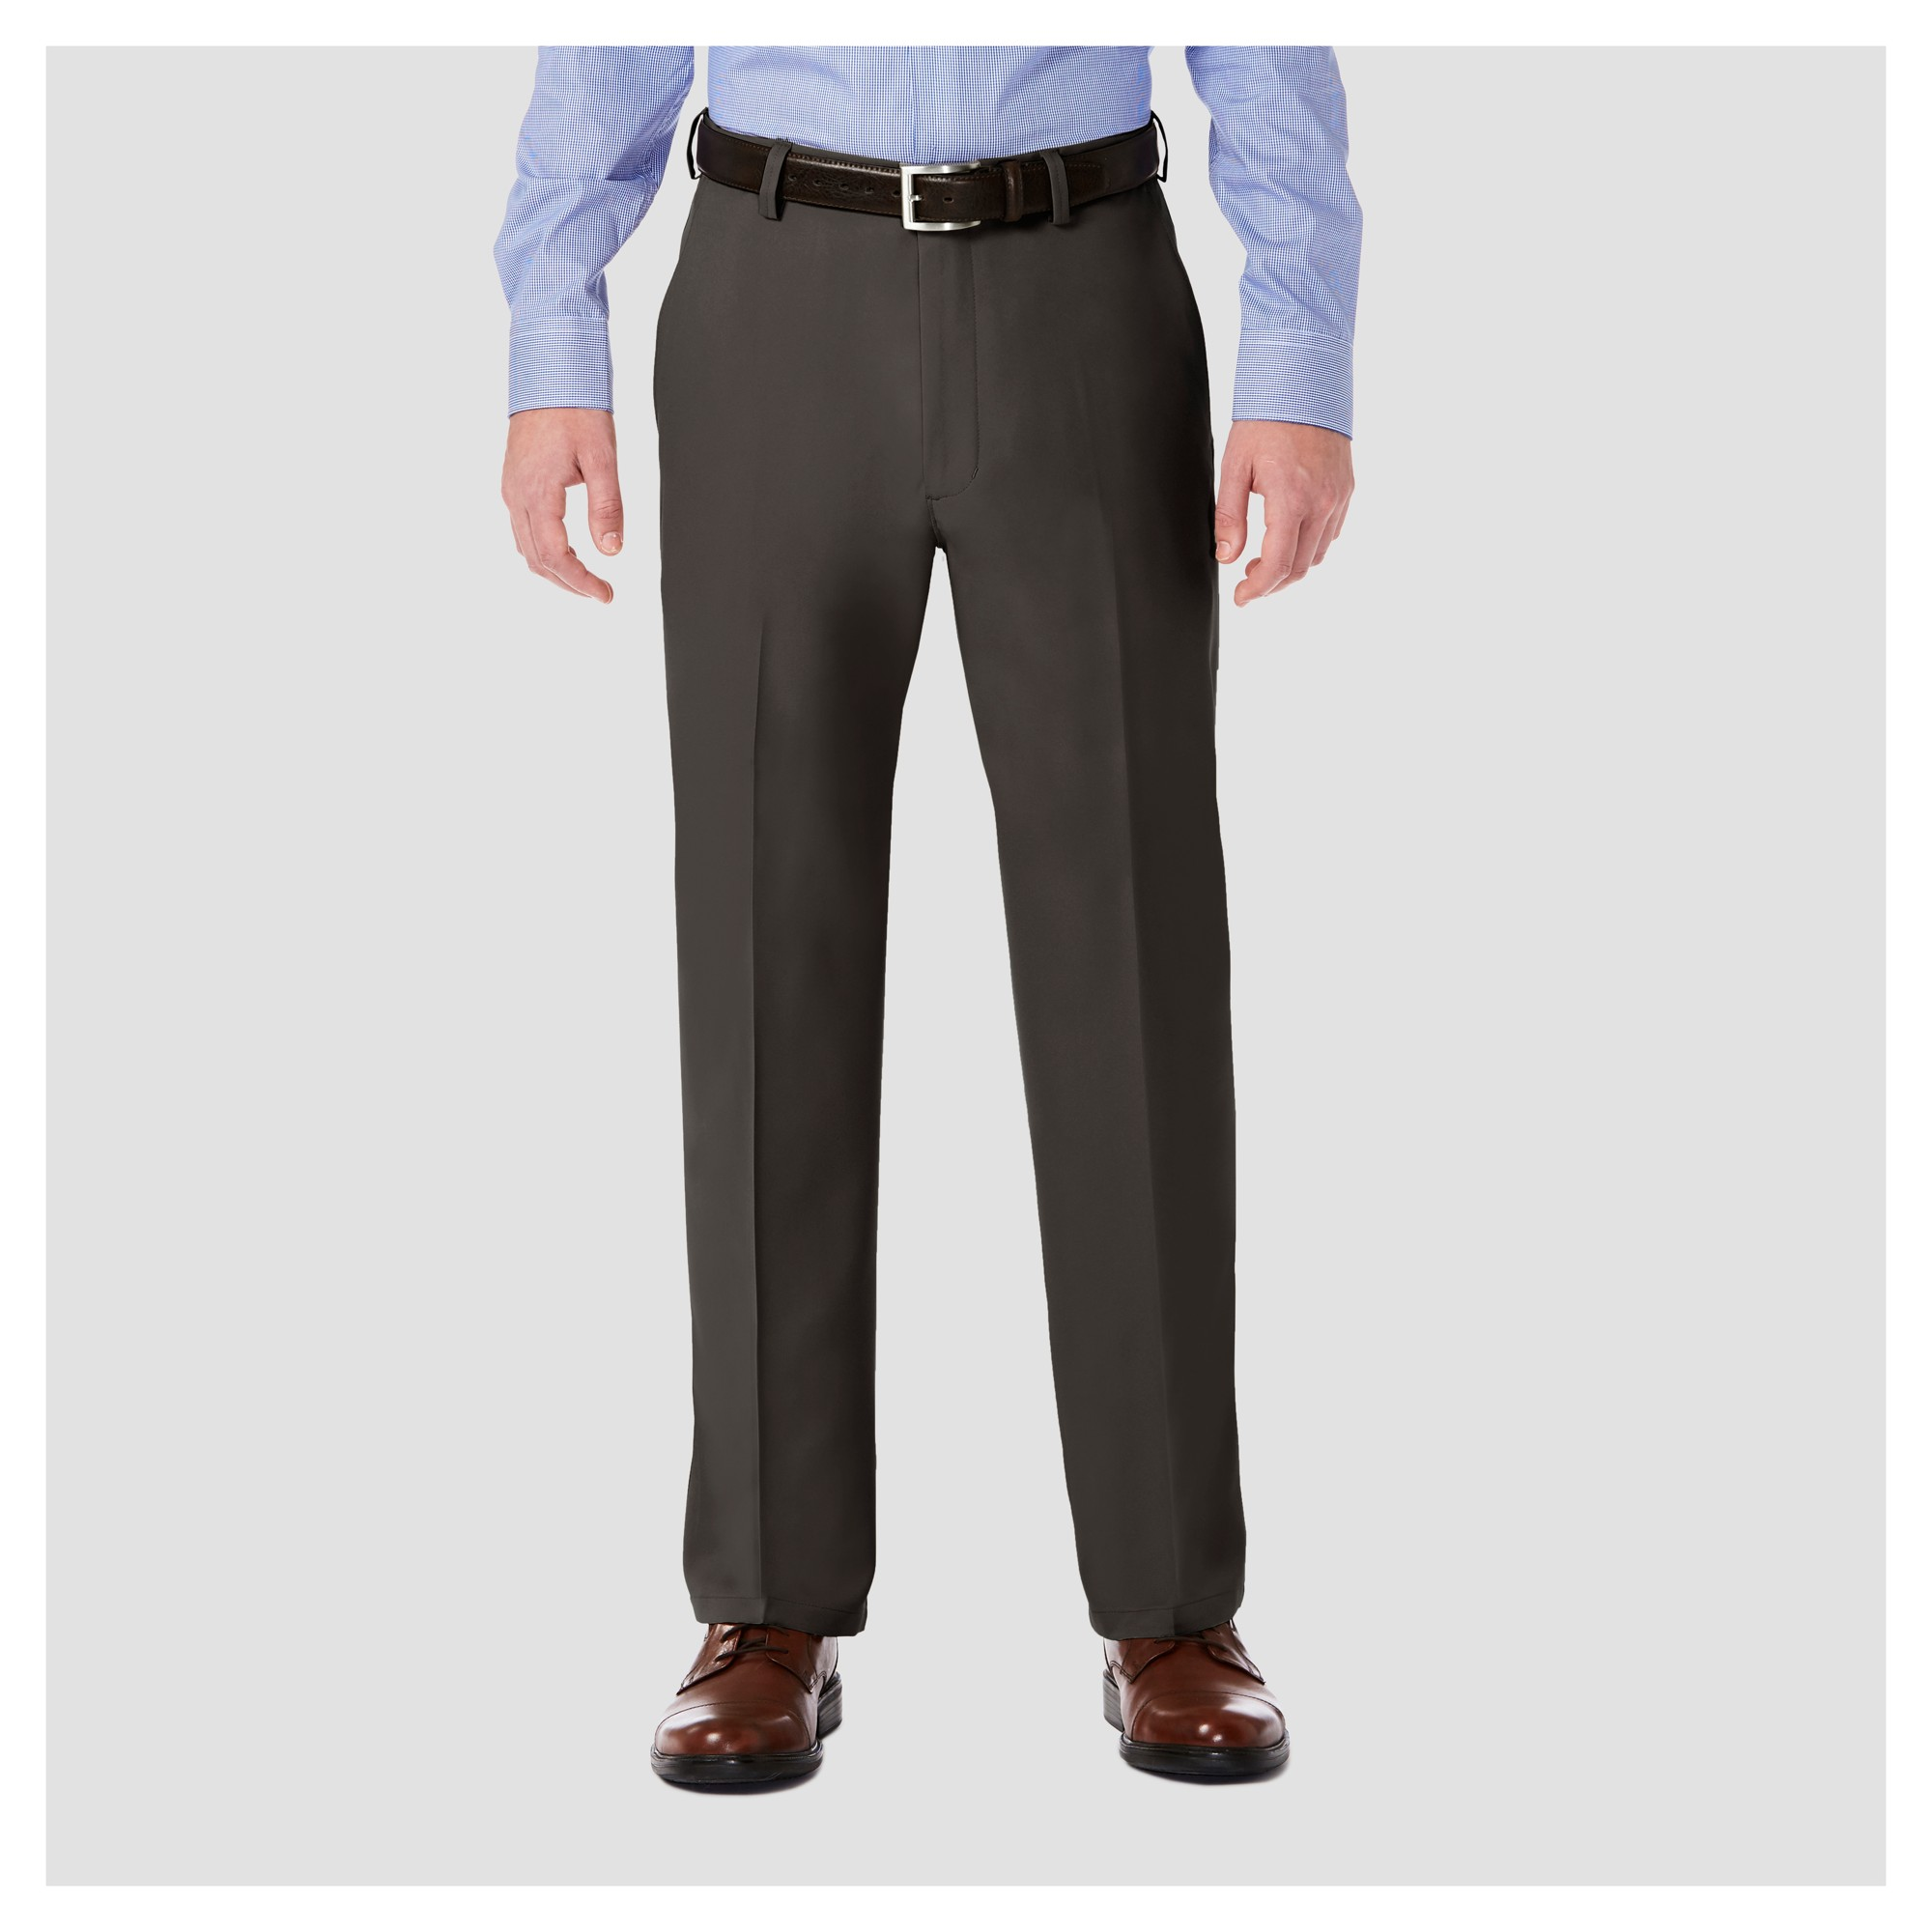 Haggar H26 Men's Performance 4 Way Stretch Classic Fit Trouser Pants - Charcoal Heather 32X32